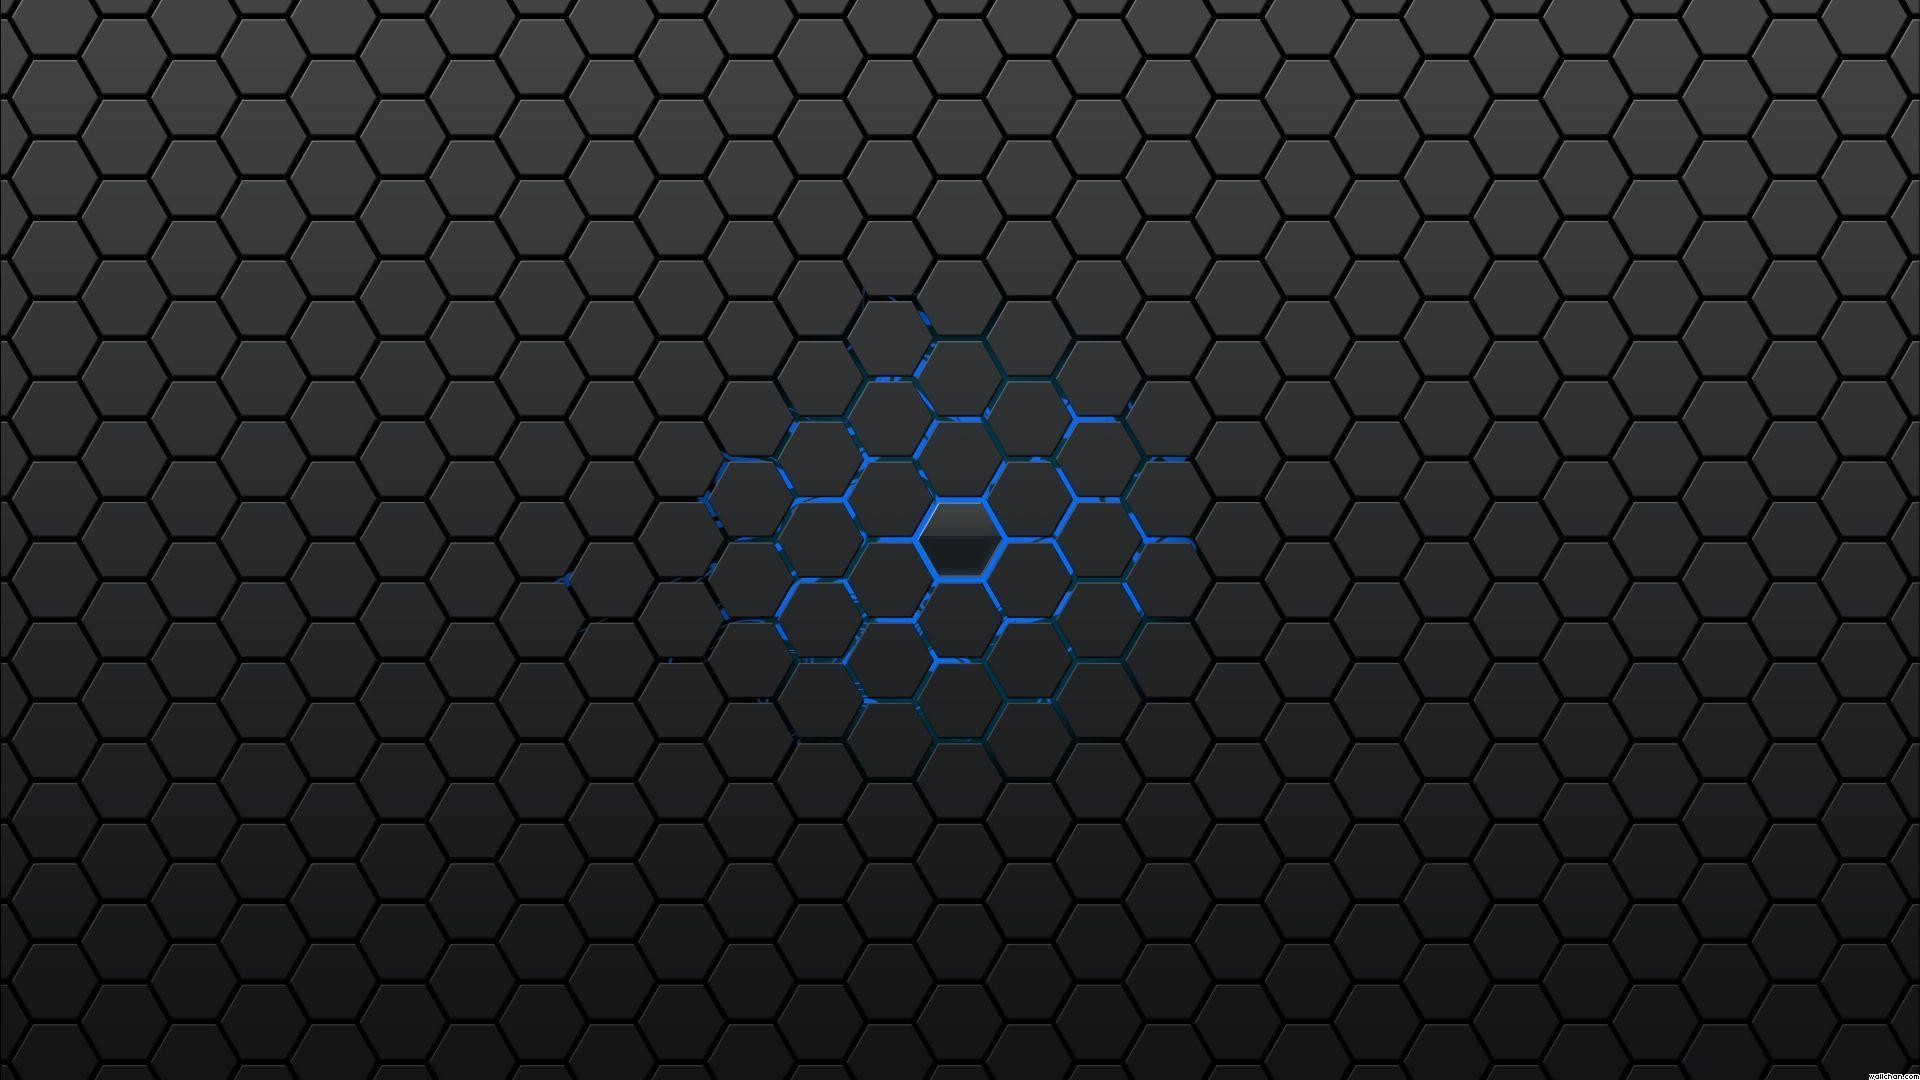 wallpaper, sandbox, paper, background, hexagon, patterns ...